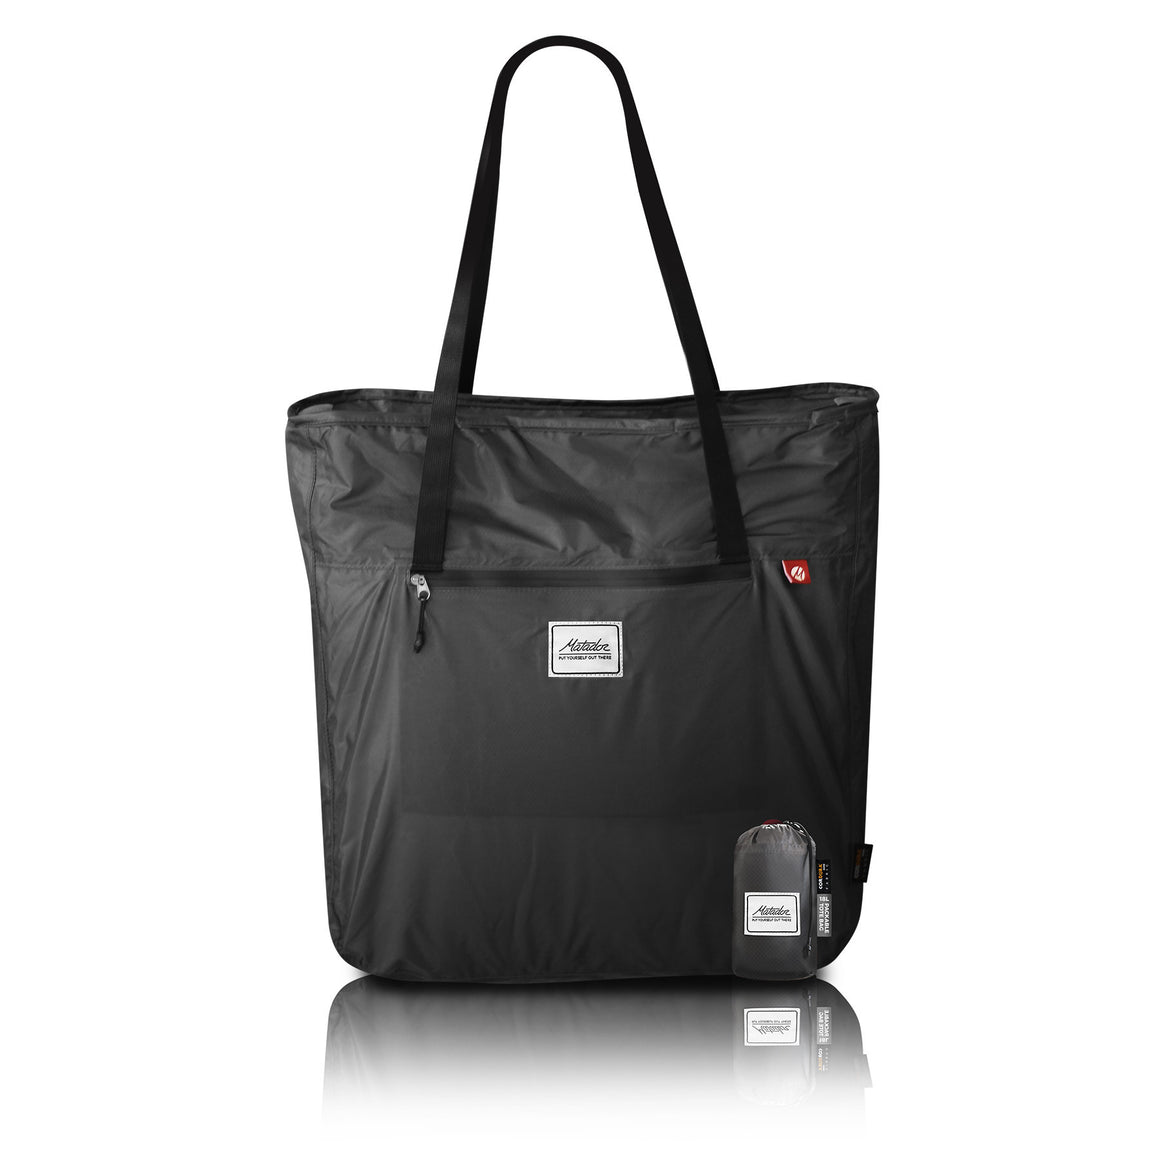 Matador Transit Compact Pack-away Tote Bag Grey